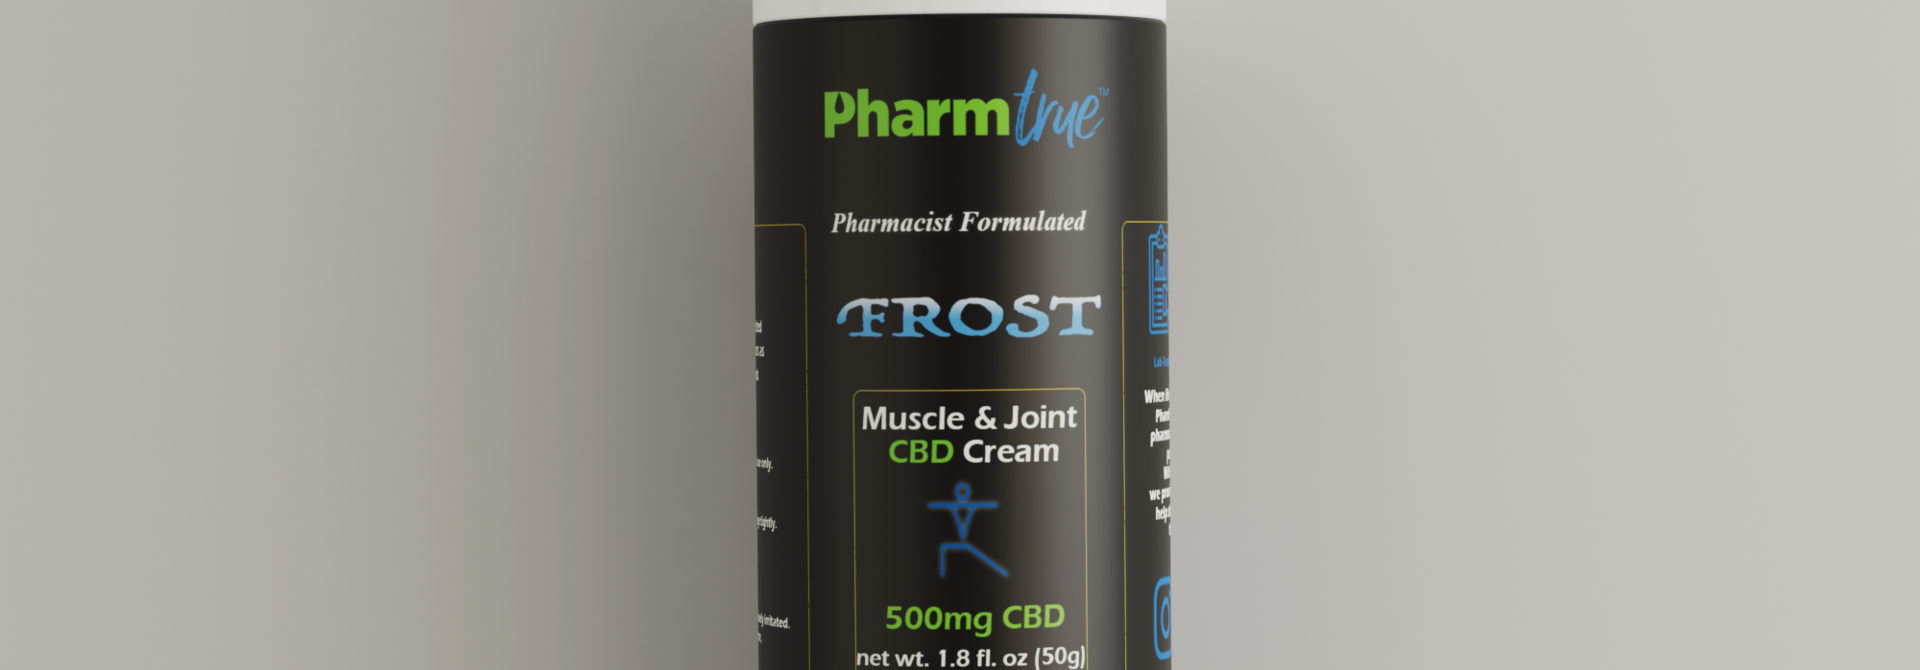 Frost Muscle & Joint Cream 500mg CBD 50 Grams